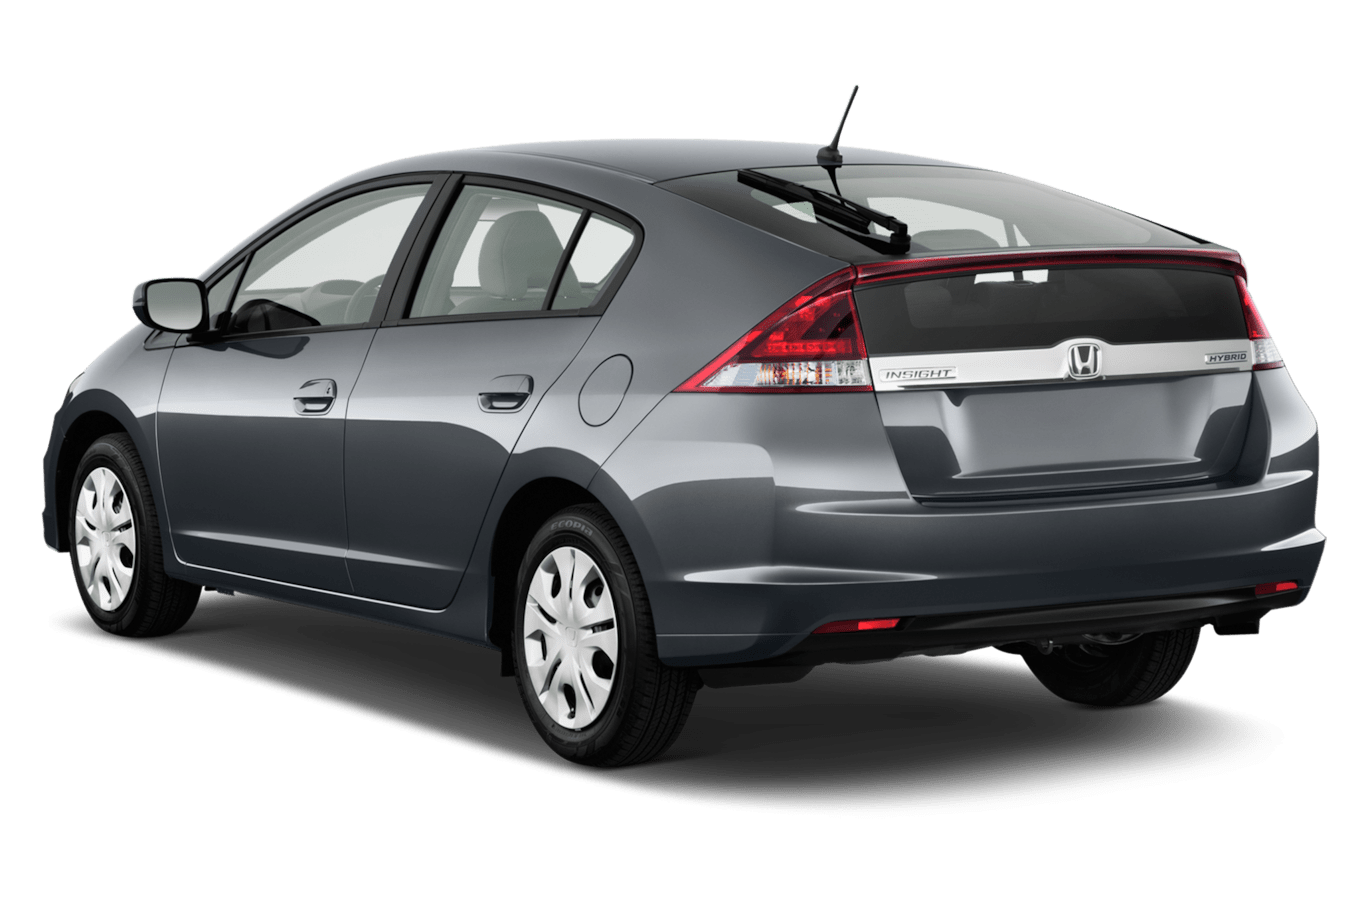 hight resolution of 2012 honda insight reviews research insight prices specs 2011 honda insight engine diagram source blown fuse check 2010